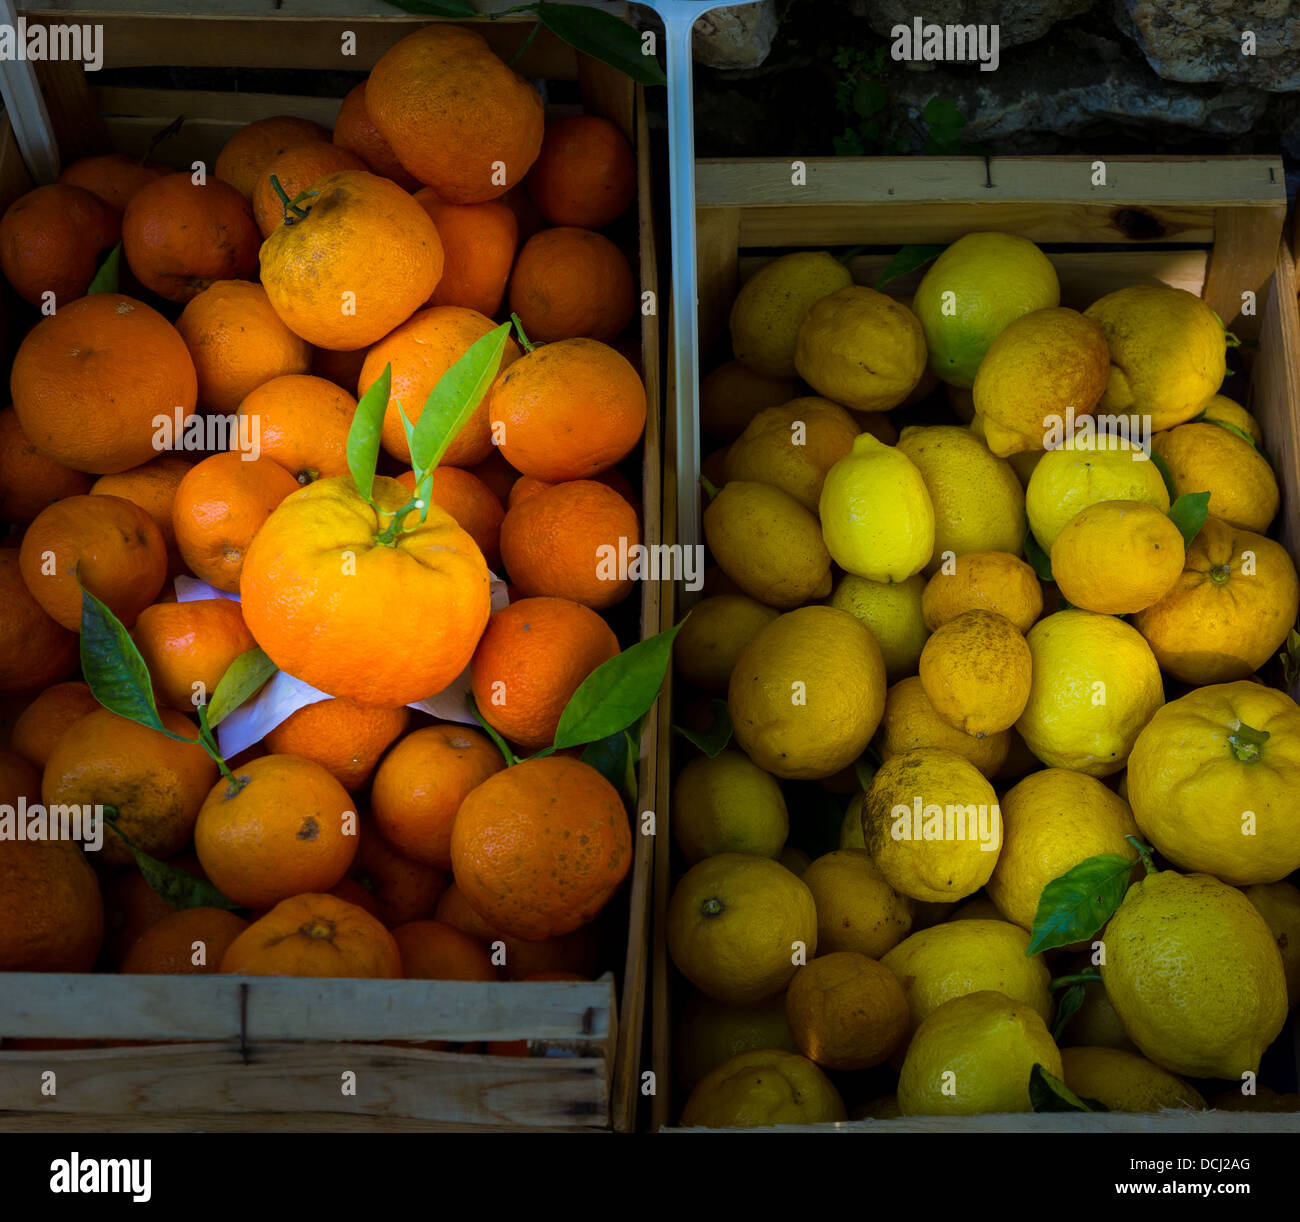 Fresh tree ripe oranges and lemons for sale in Saint-Paul-de-Vence in southern France - Stock Image